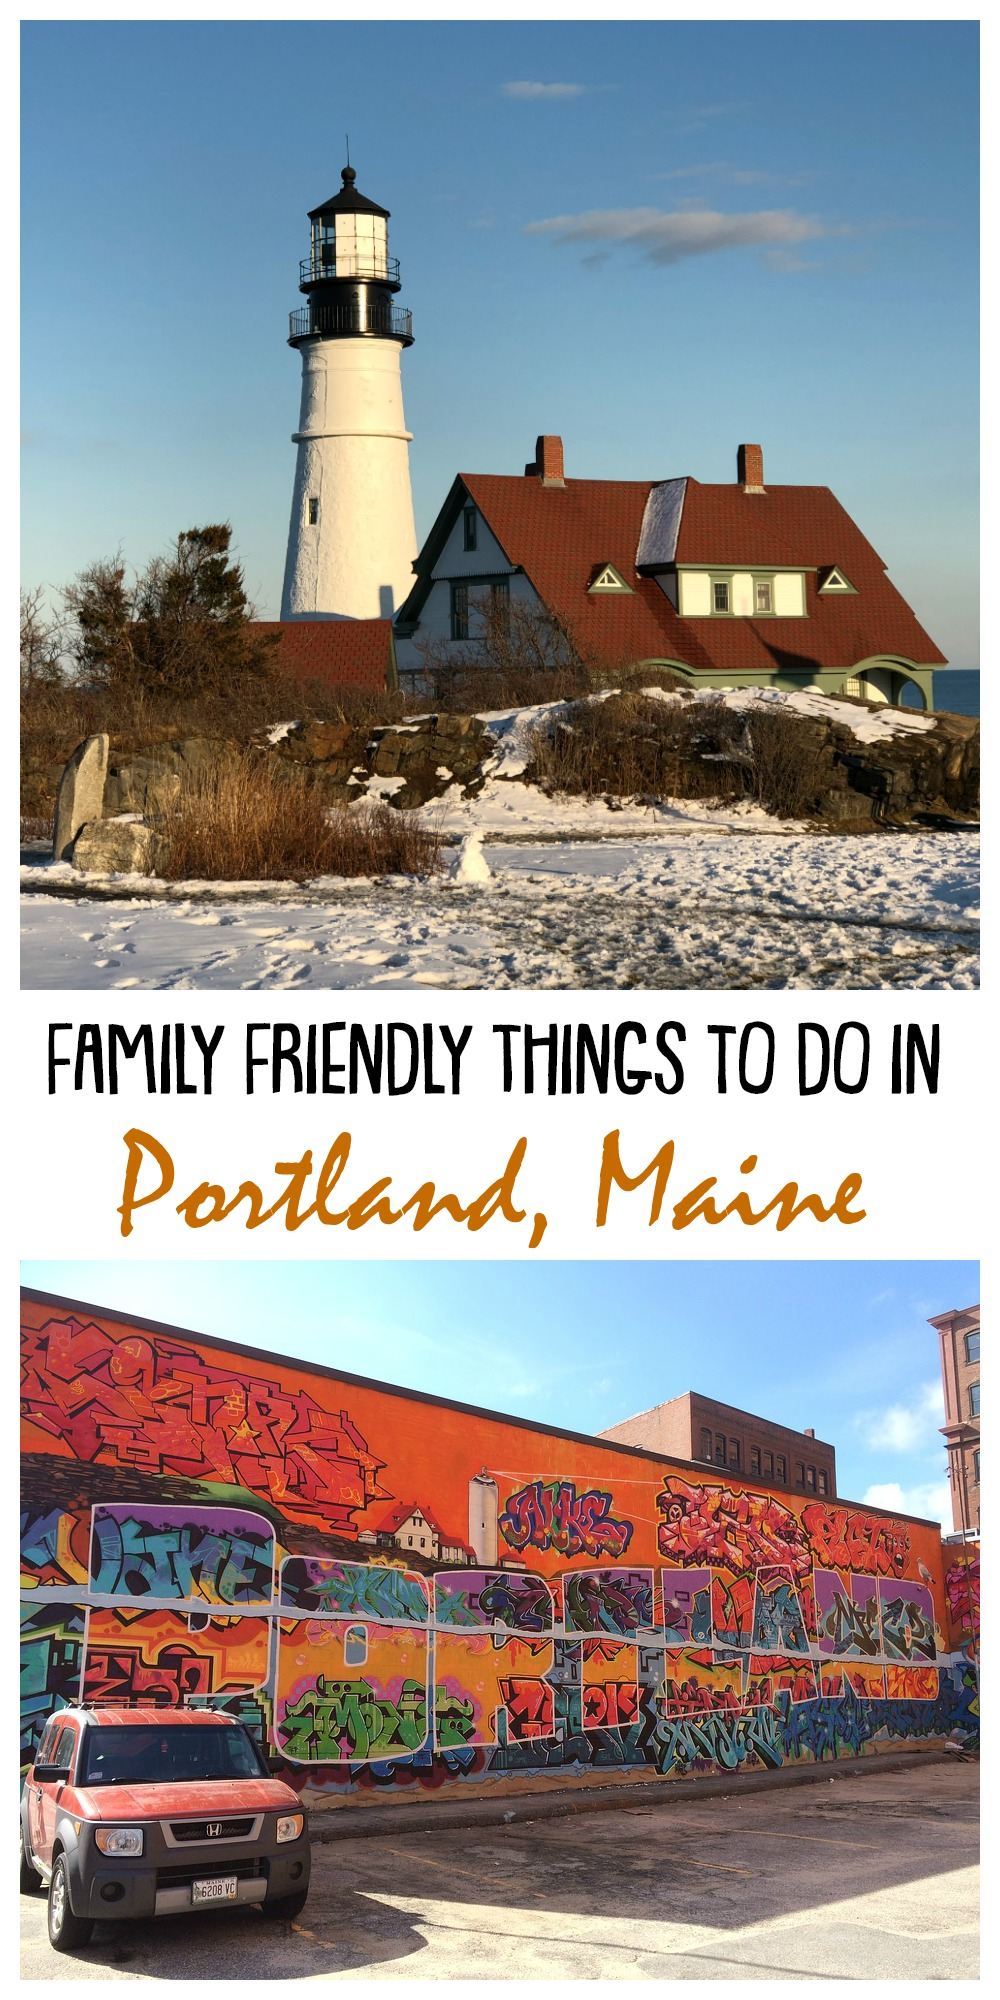 Here are some family friendly things to do while you are in Portland, Maine. There is no shortage of things to do while you're in Portland and it's a great vacation destination for your next trip to New England.